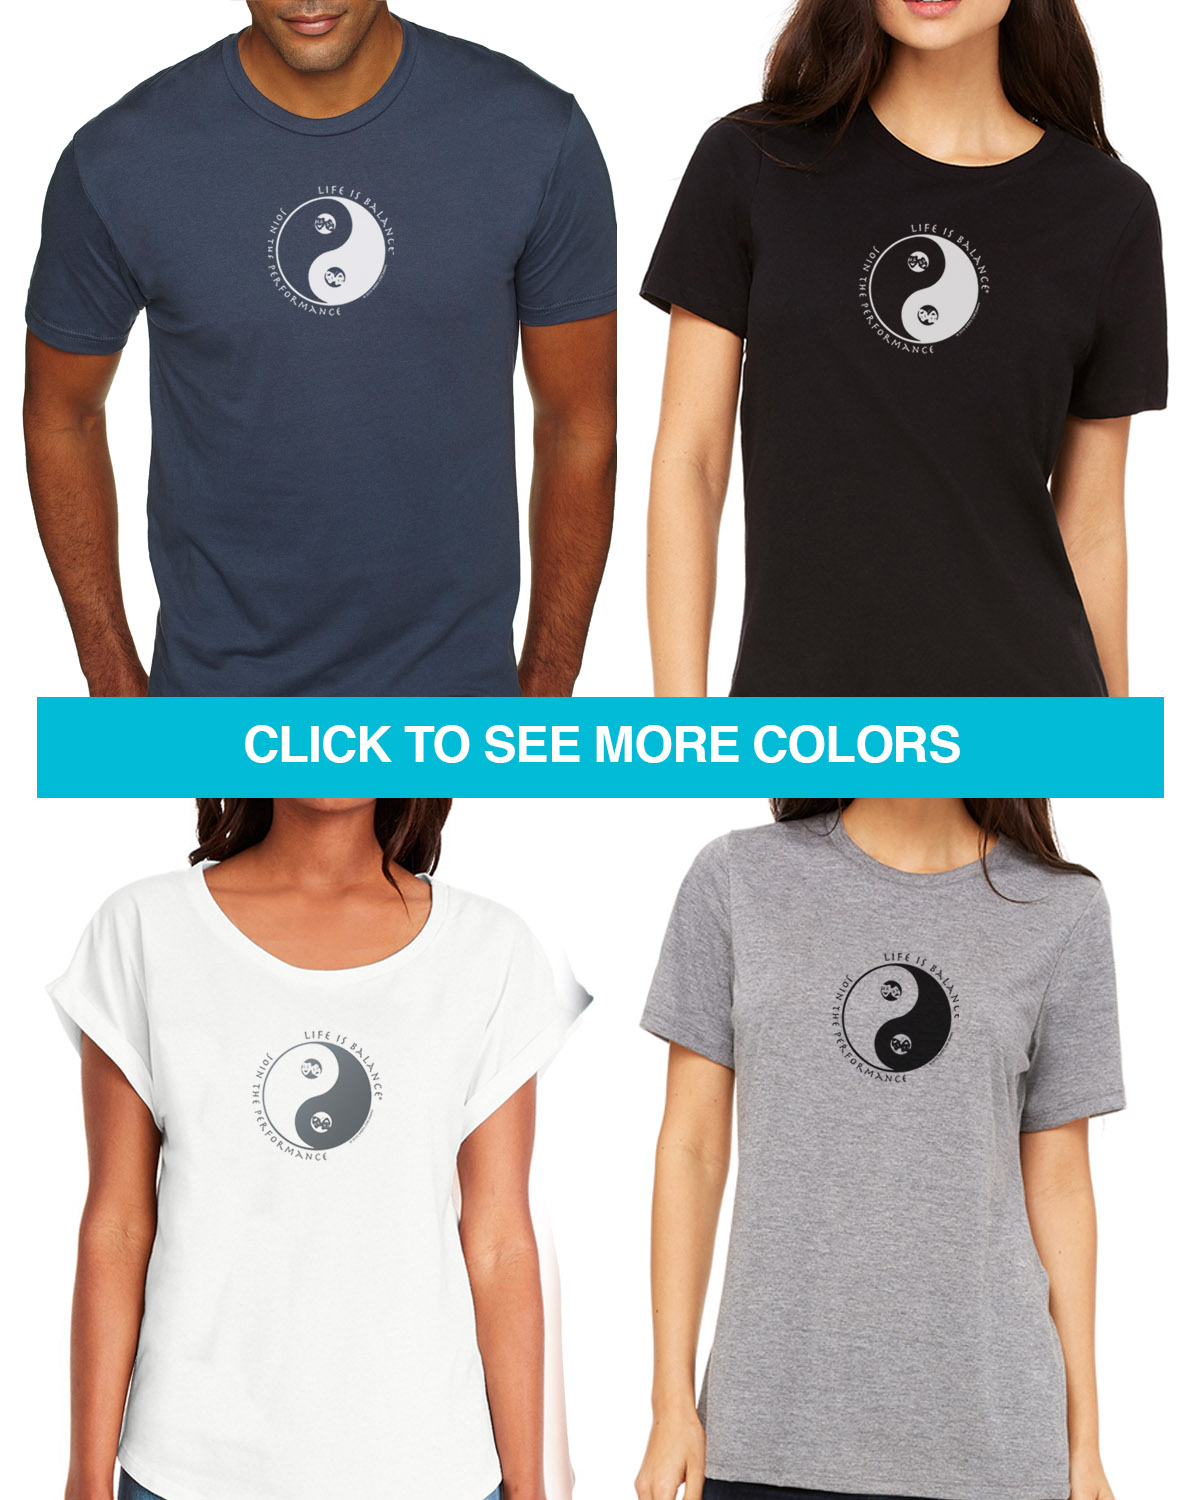 Theater lovers short sleeve T-shirts for Men and Women. Women's fitted styles and a unisex style for men or for women